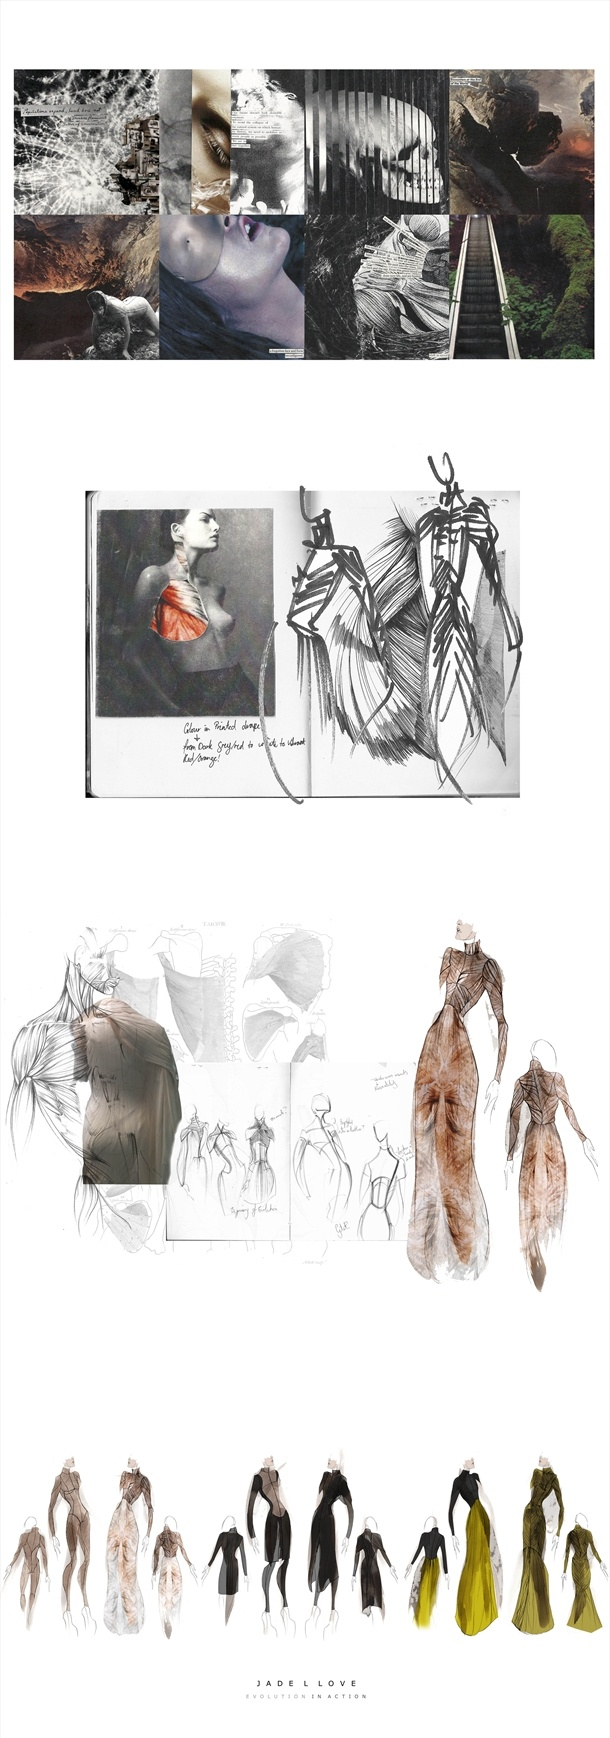 Fashion Sketchbook drawings, illustrations & fashion moodboard